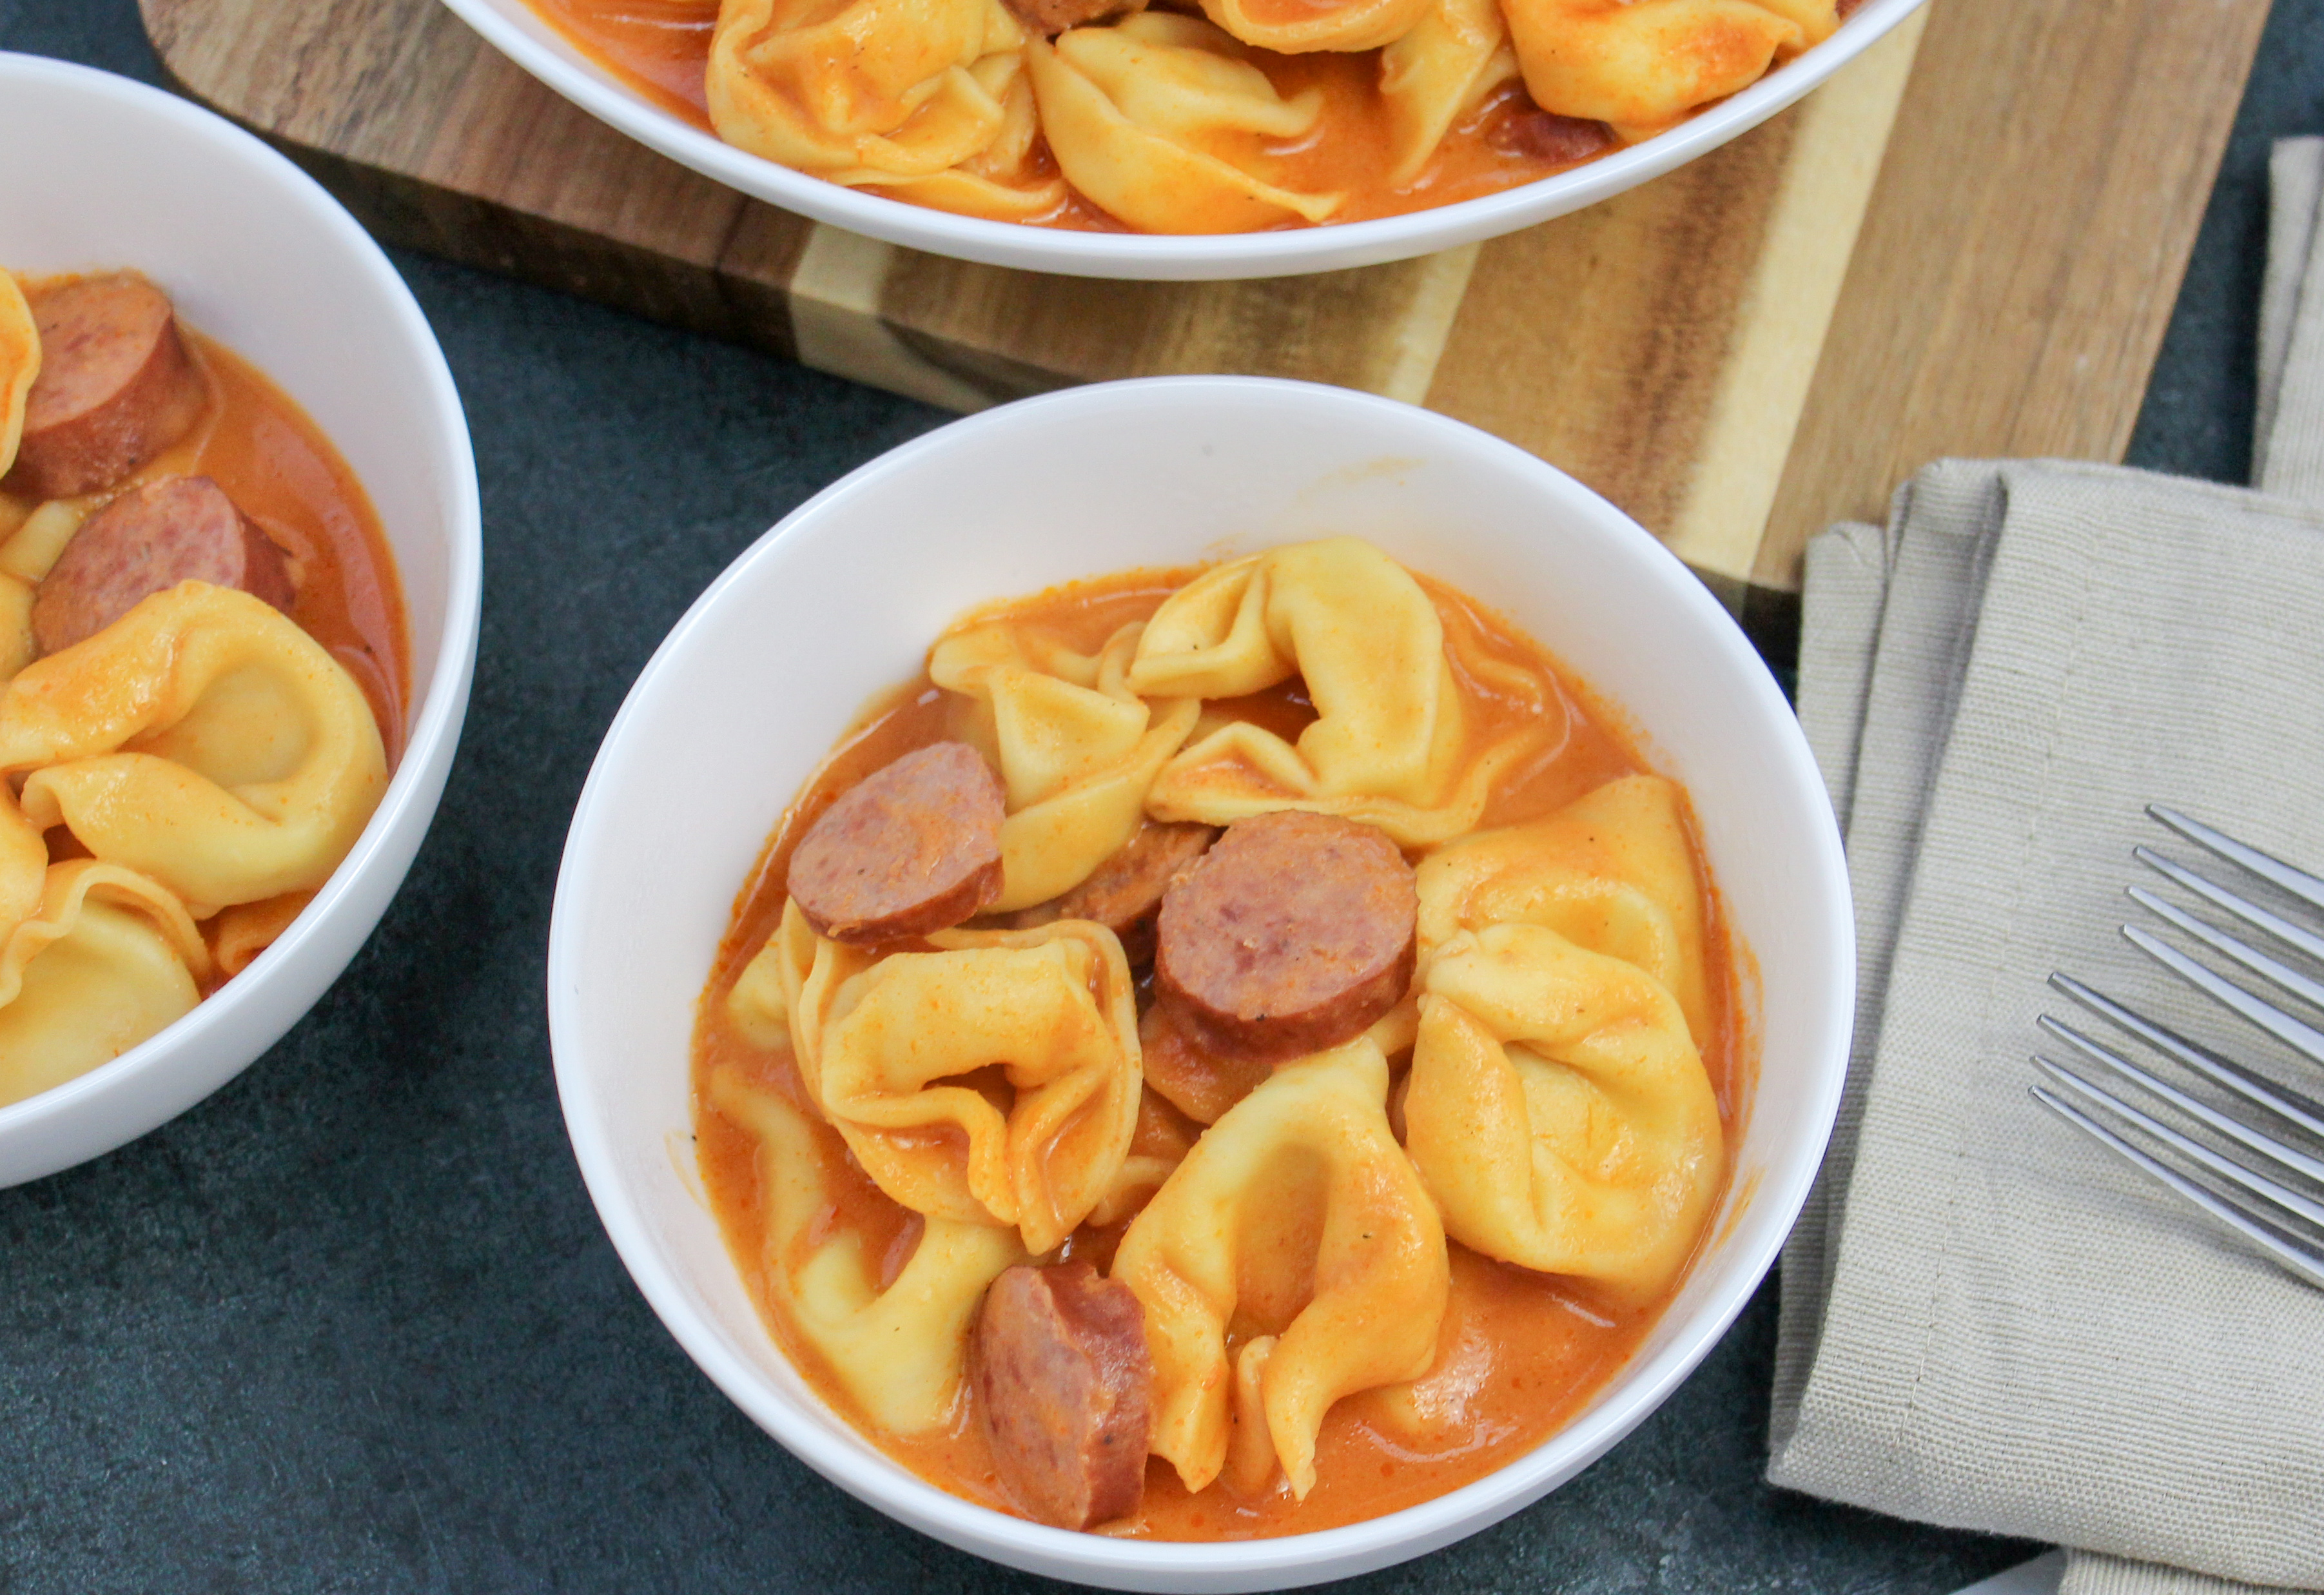 Tortellini and sliced smoked sausage in a whie bowl covered in tomato sauce